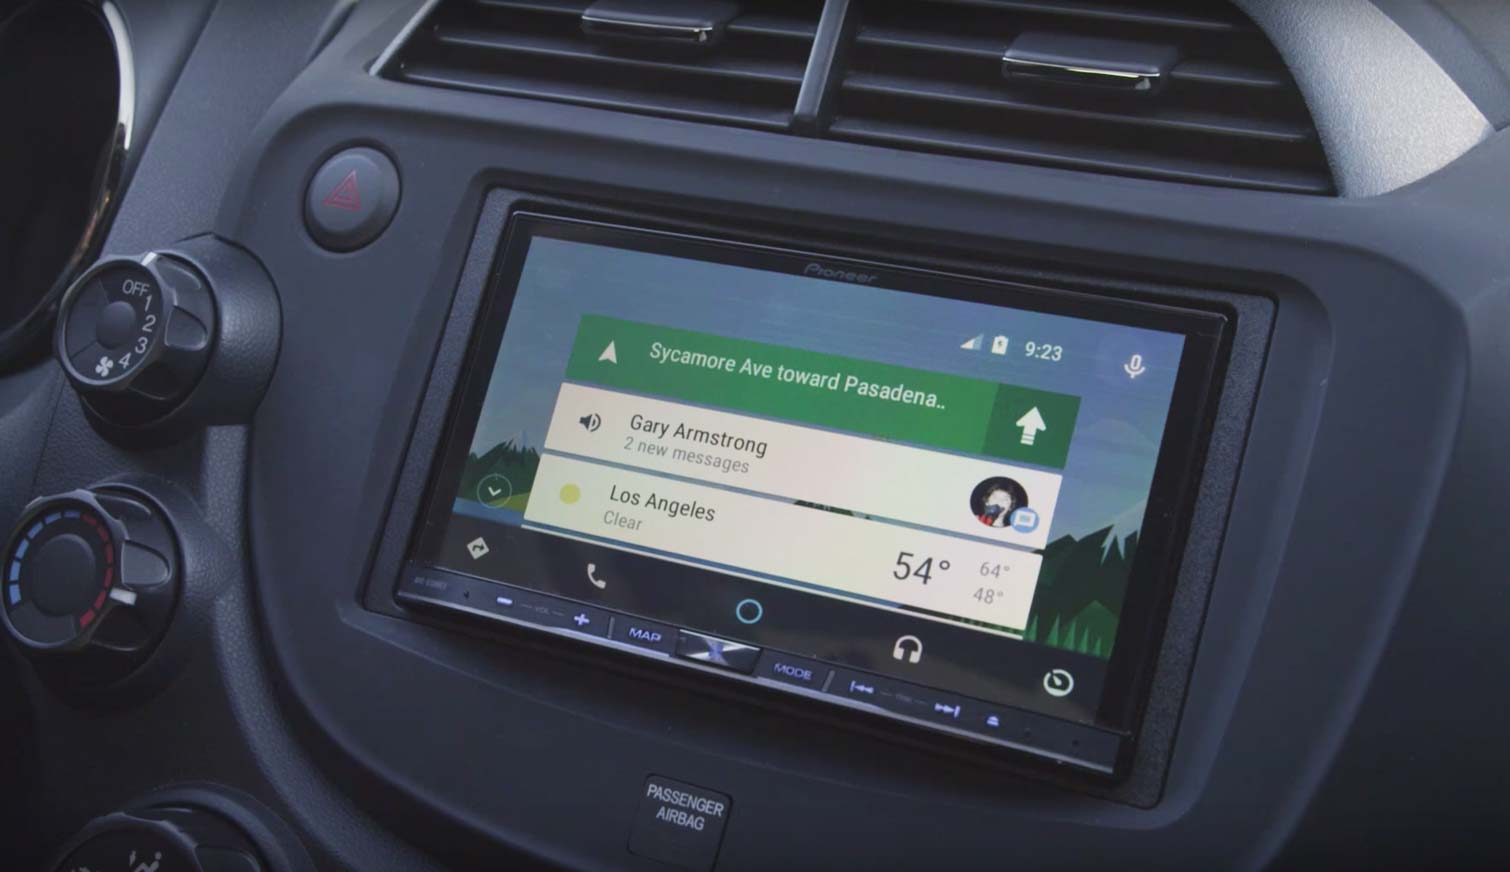 Android Auto Work